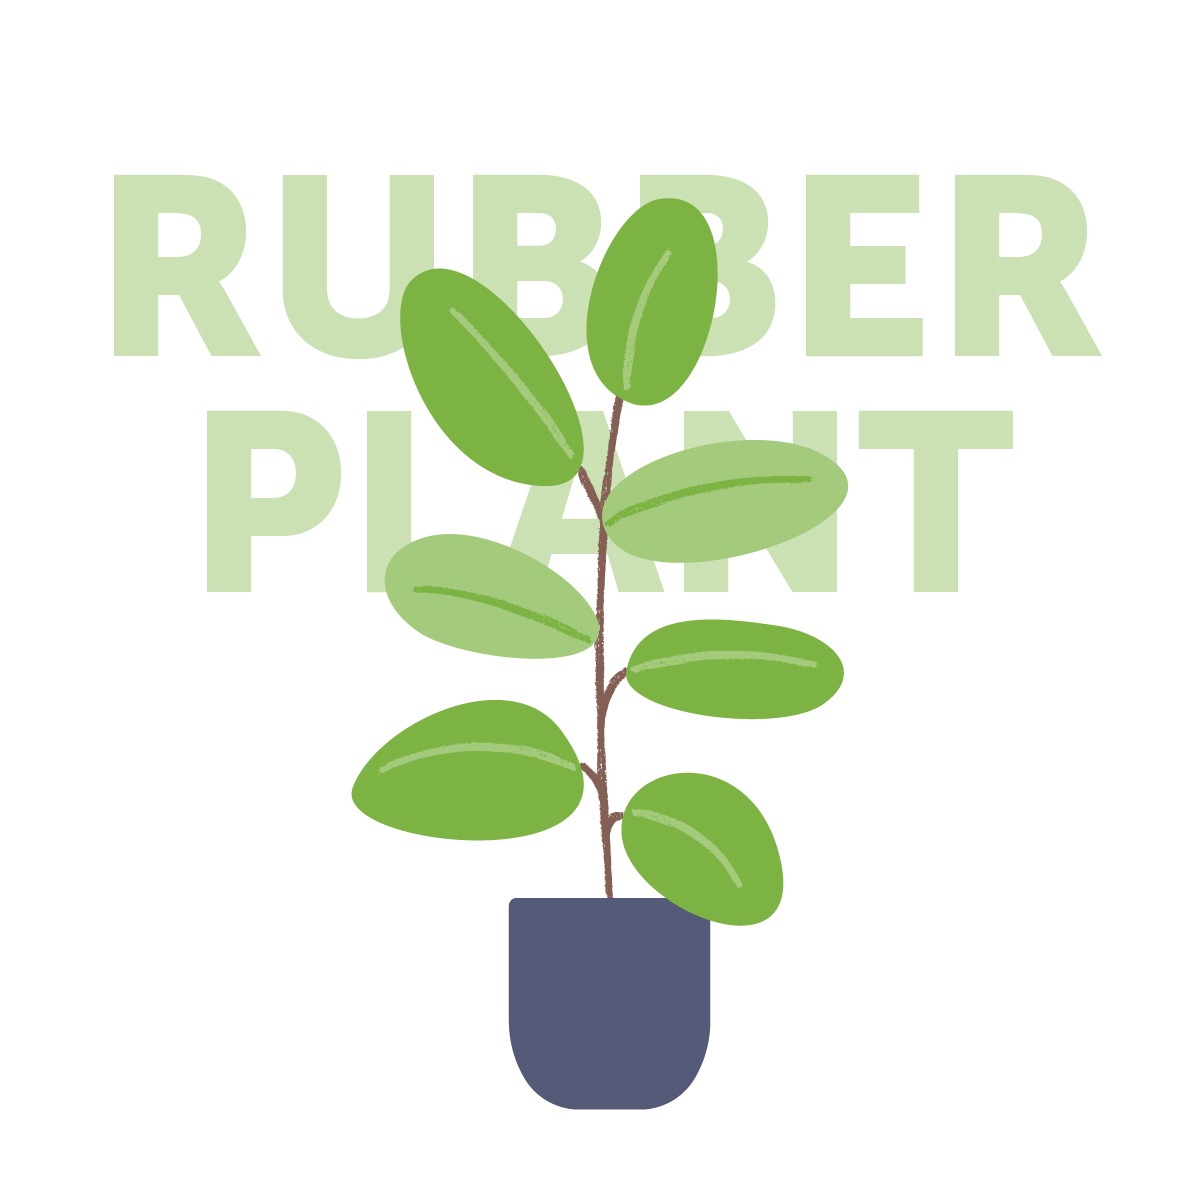 Rubber plant indoor plant | Airtasker Life Skills